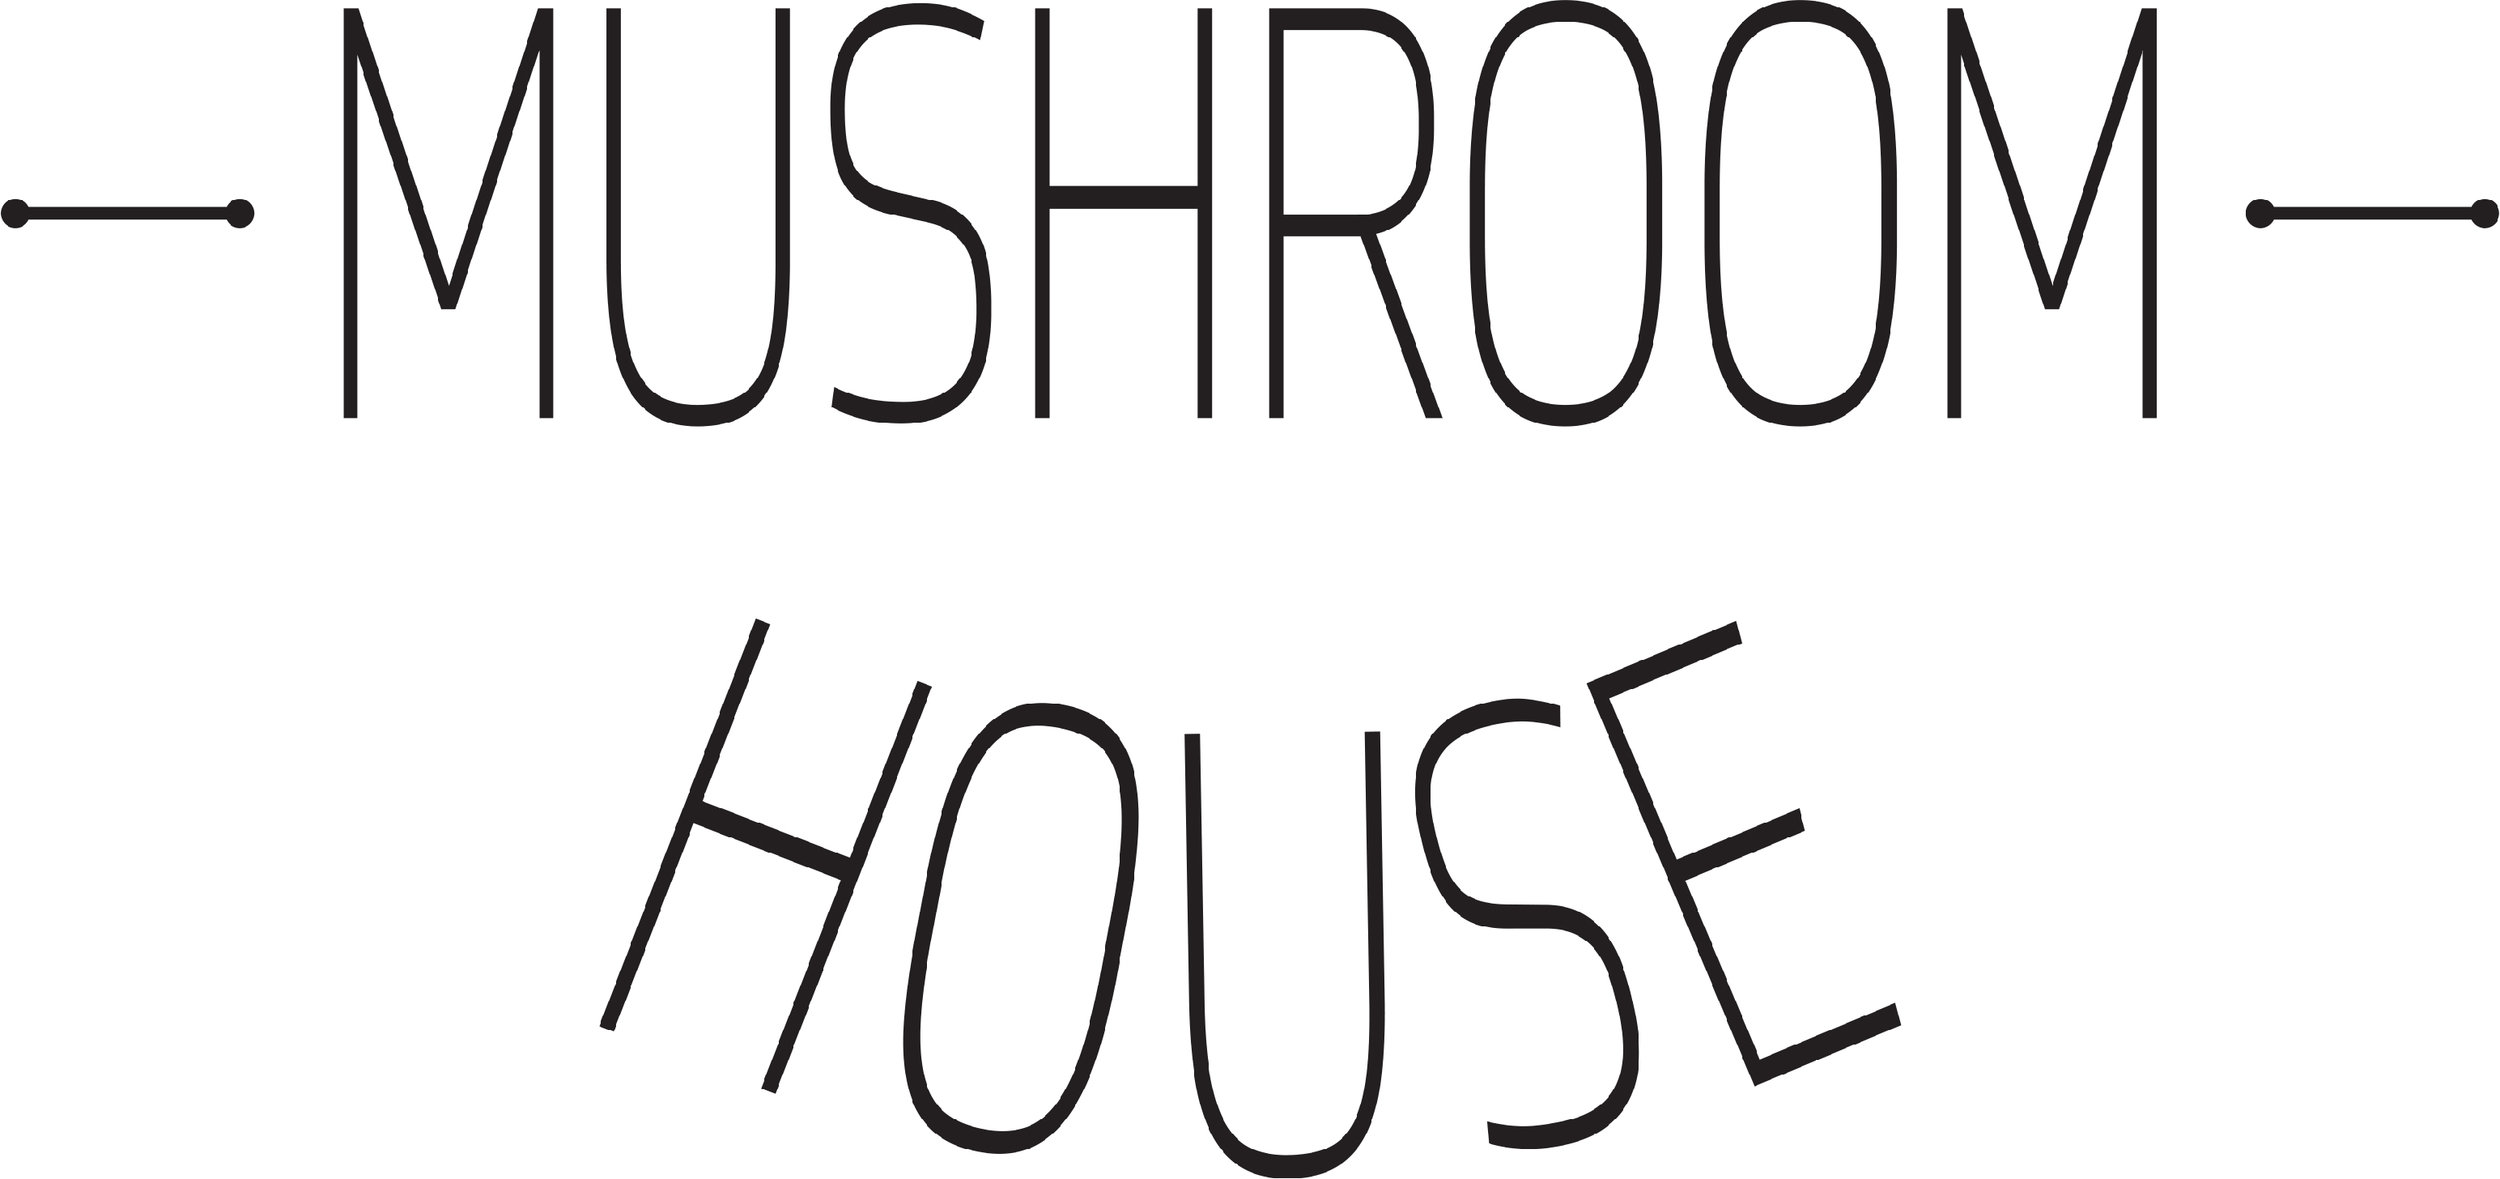 Mushroom House Logo Black Text.jpg